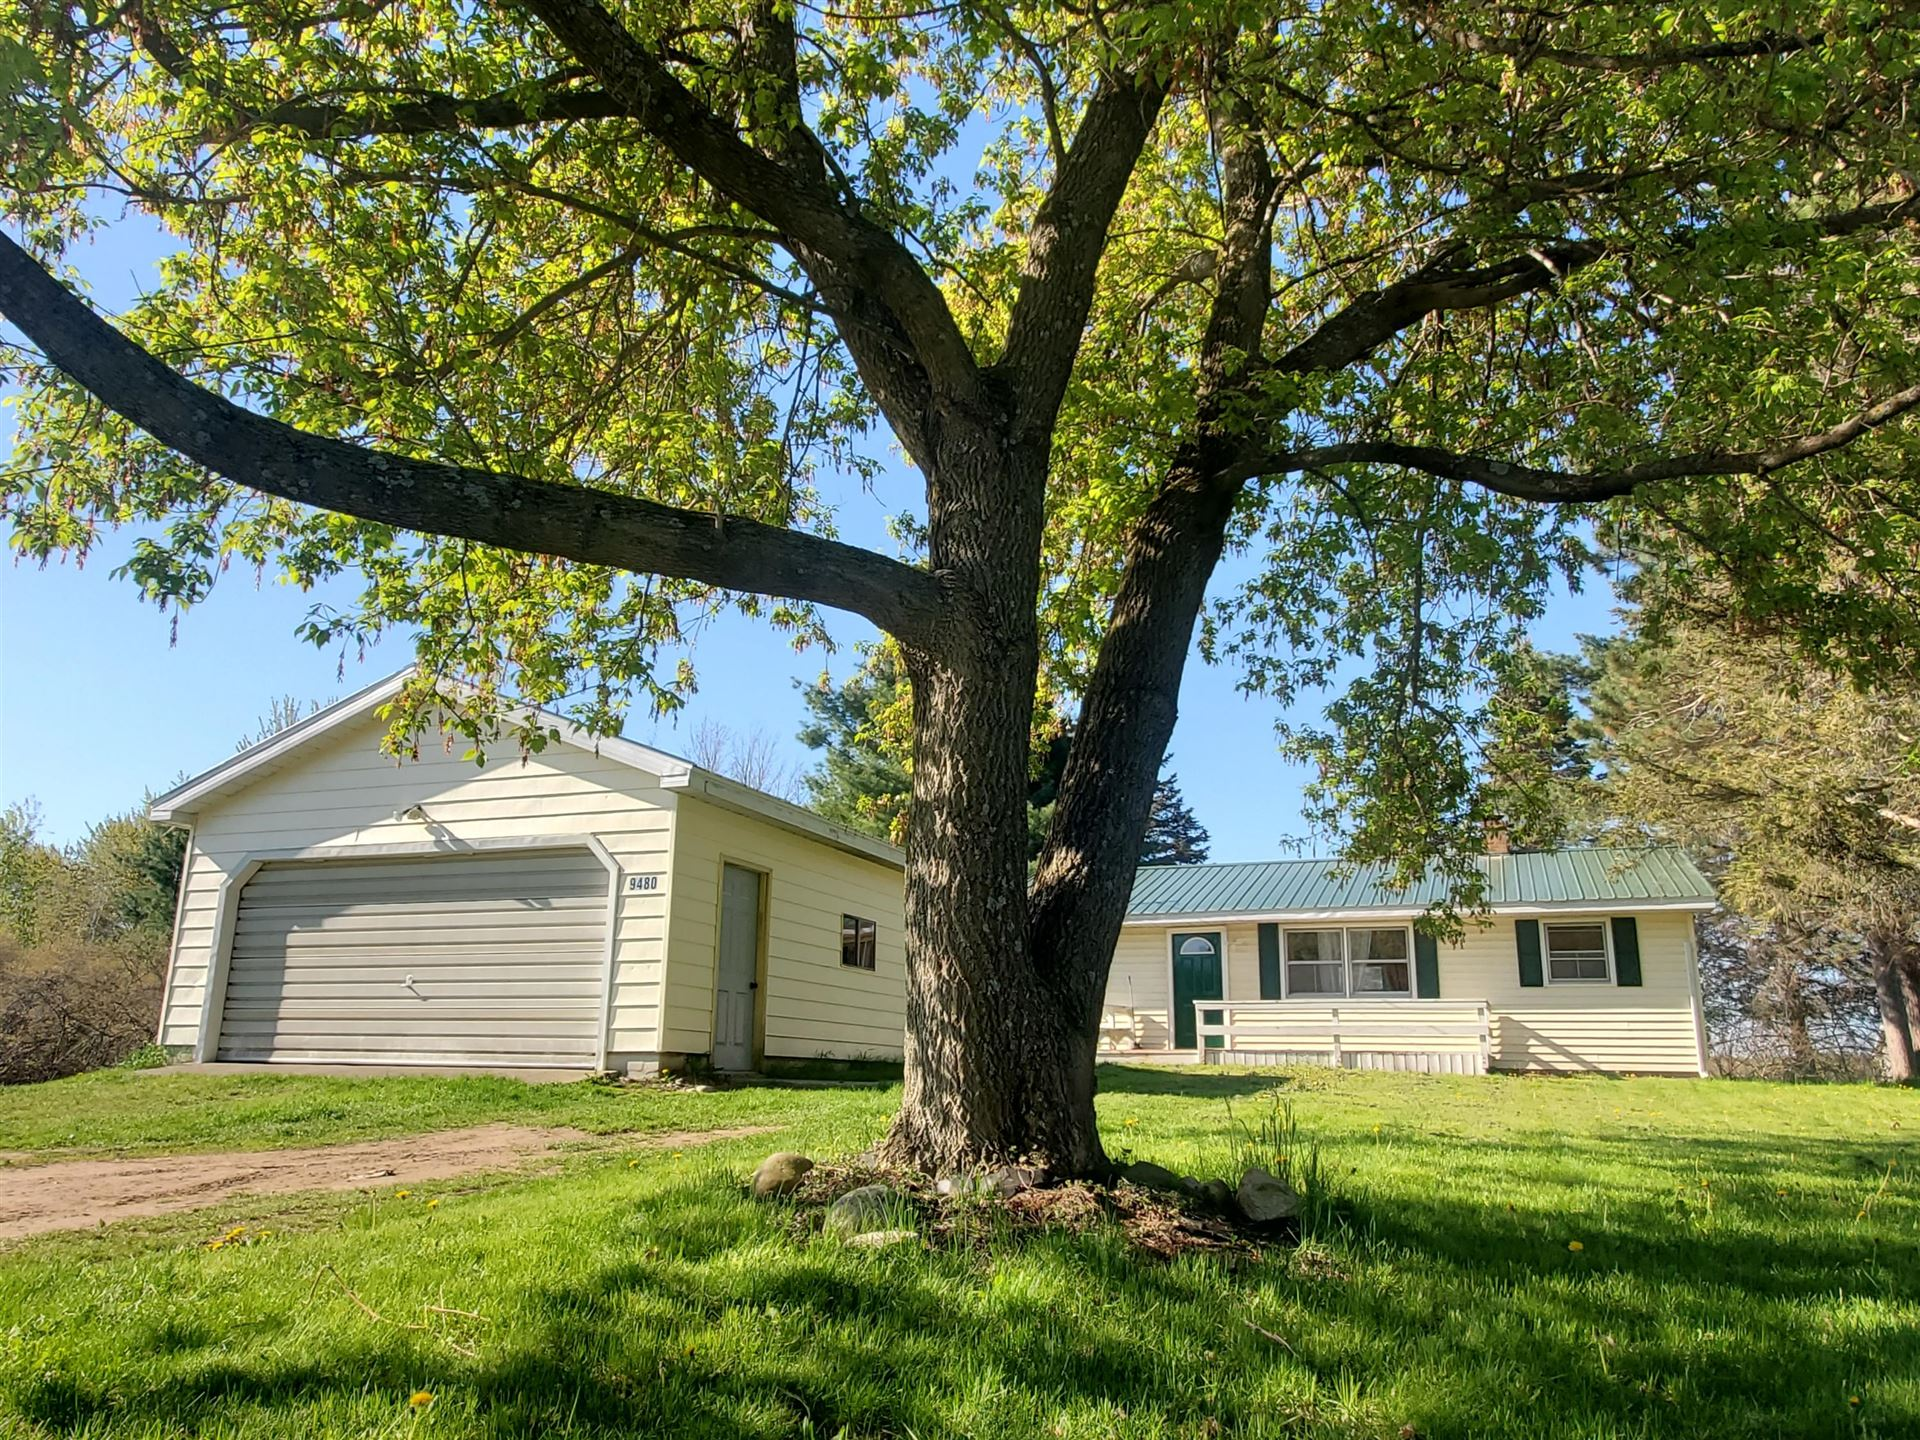 9480 Wasco Cove, Evart, MI 49631 - MLS#: 21015493